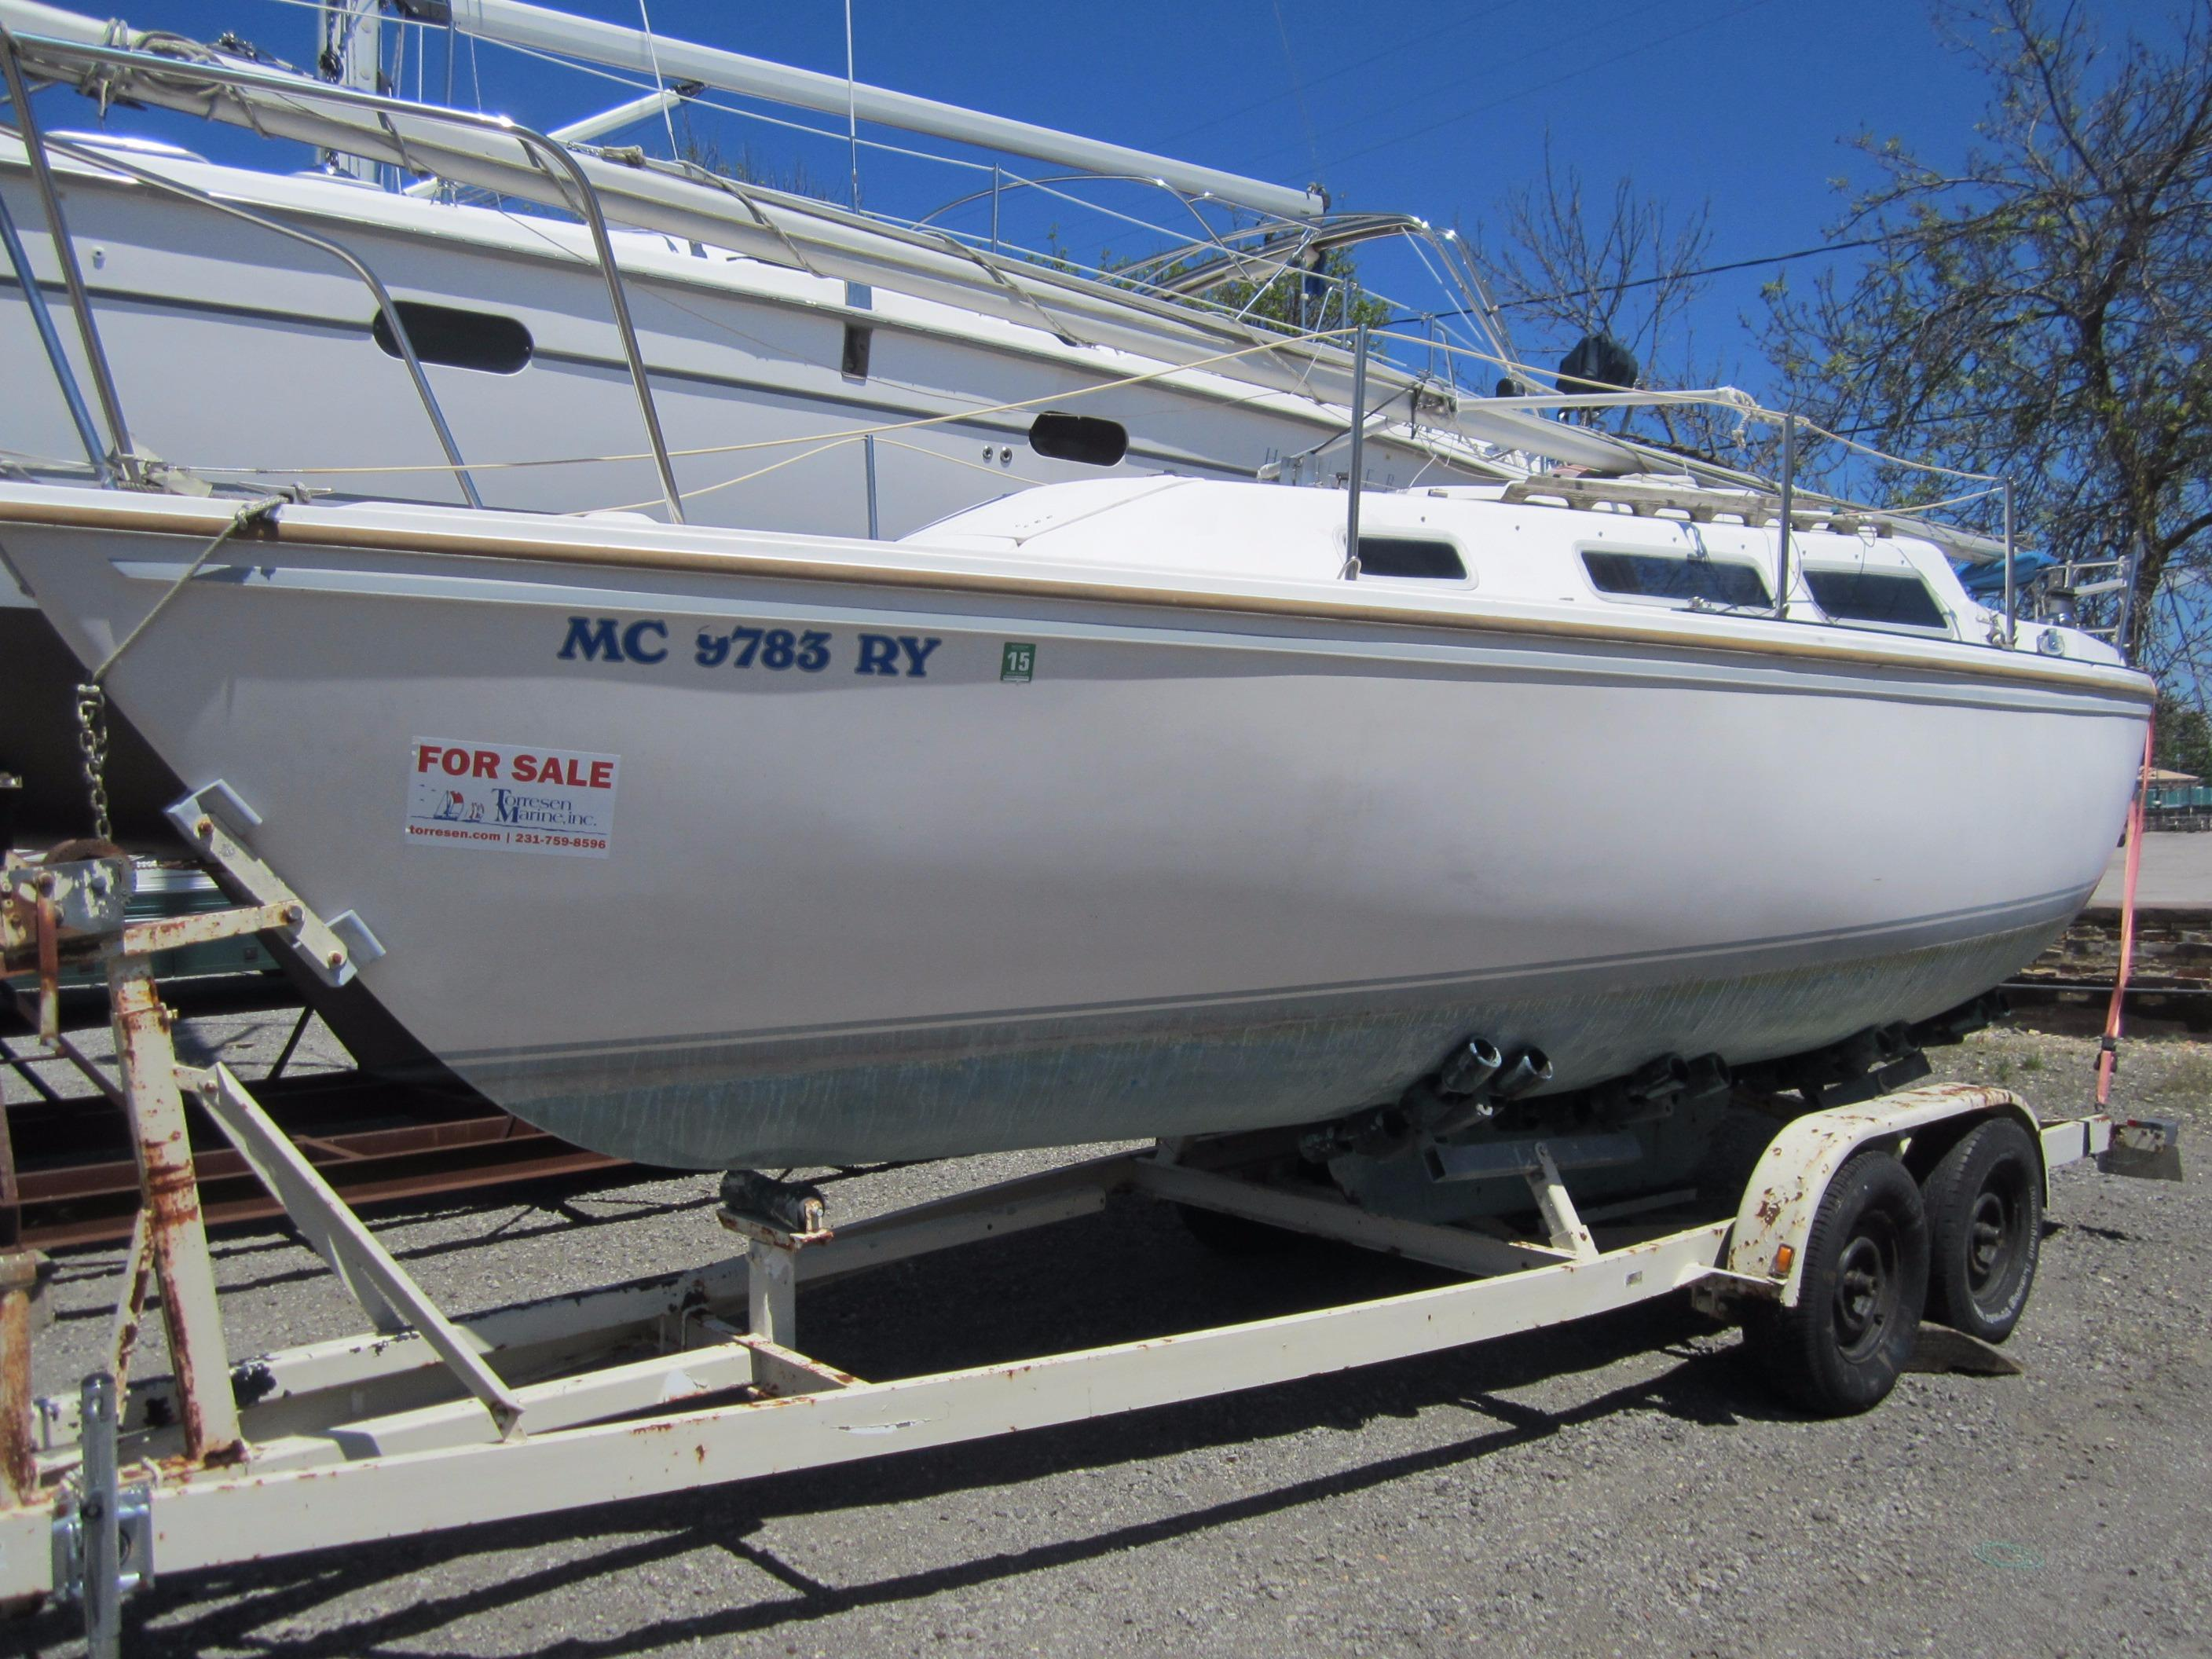 Car Rentals In Muskegon Mi ... Yacht in Muskegon MI   3944374568   Used Boats on Oodle Marketplace